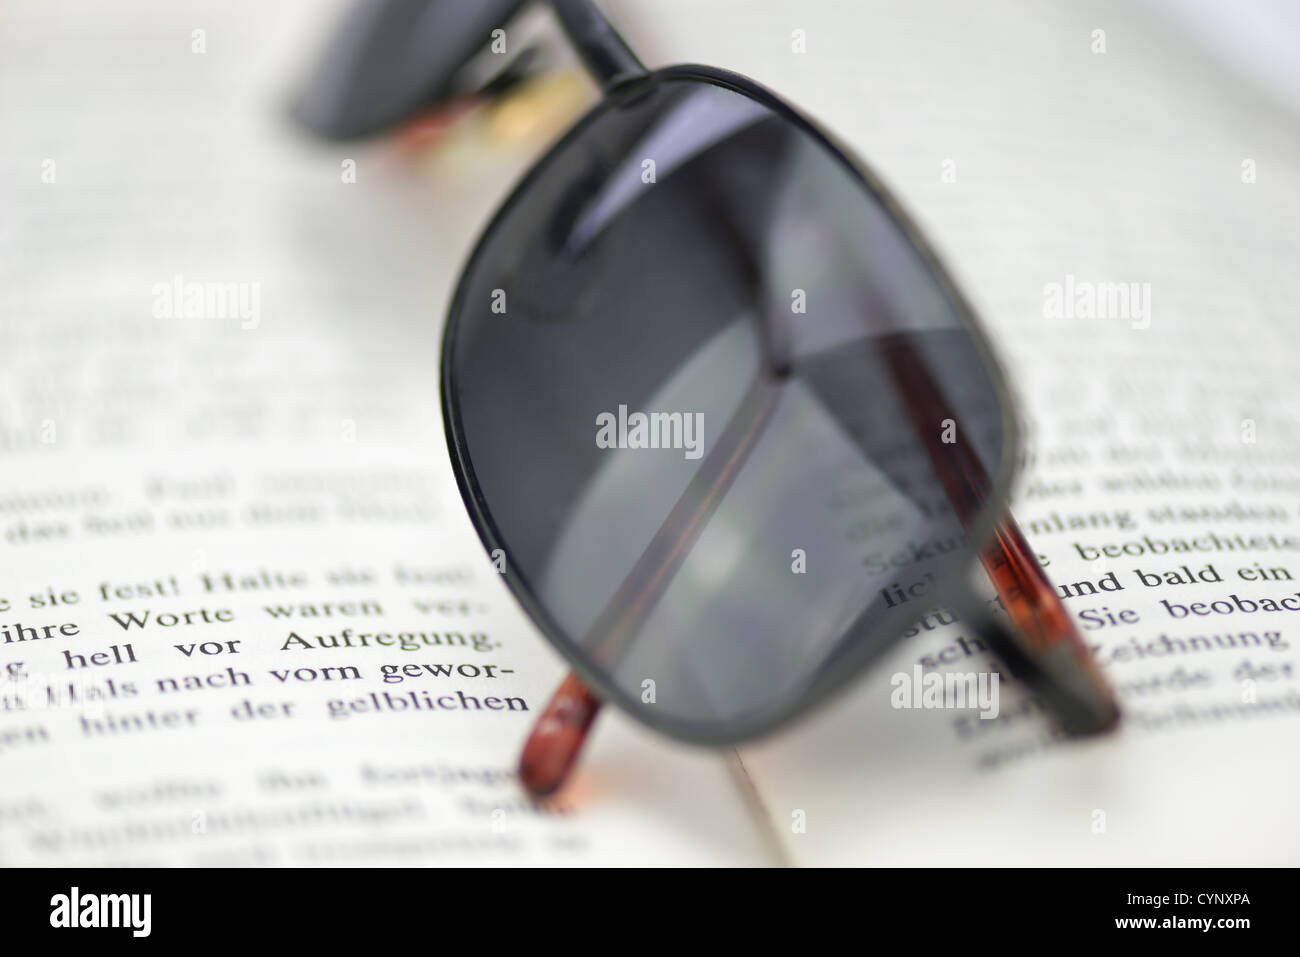 Tinted glasses on a book - Stock Image